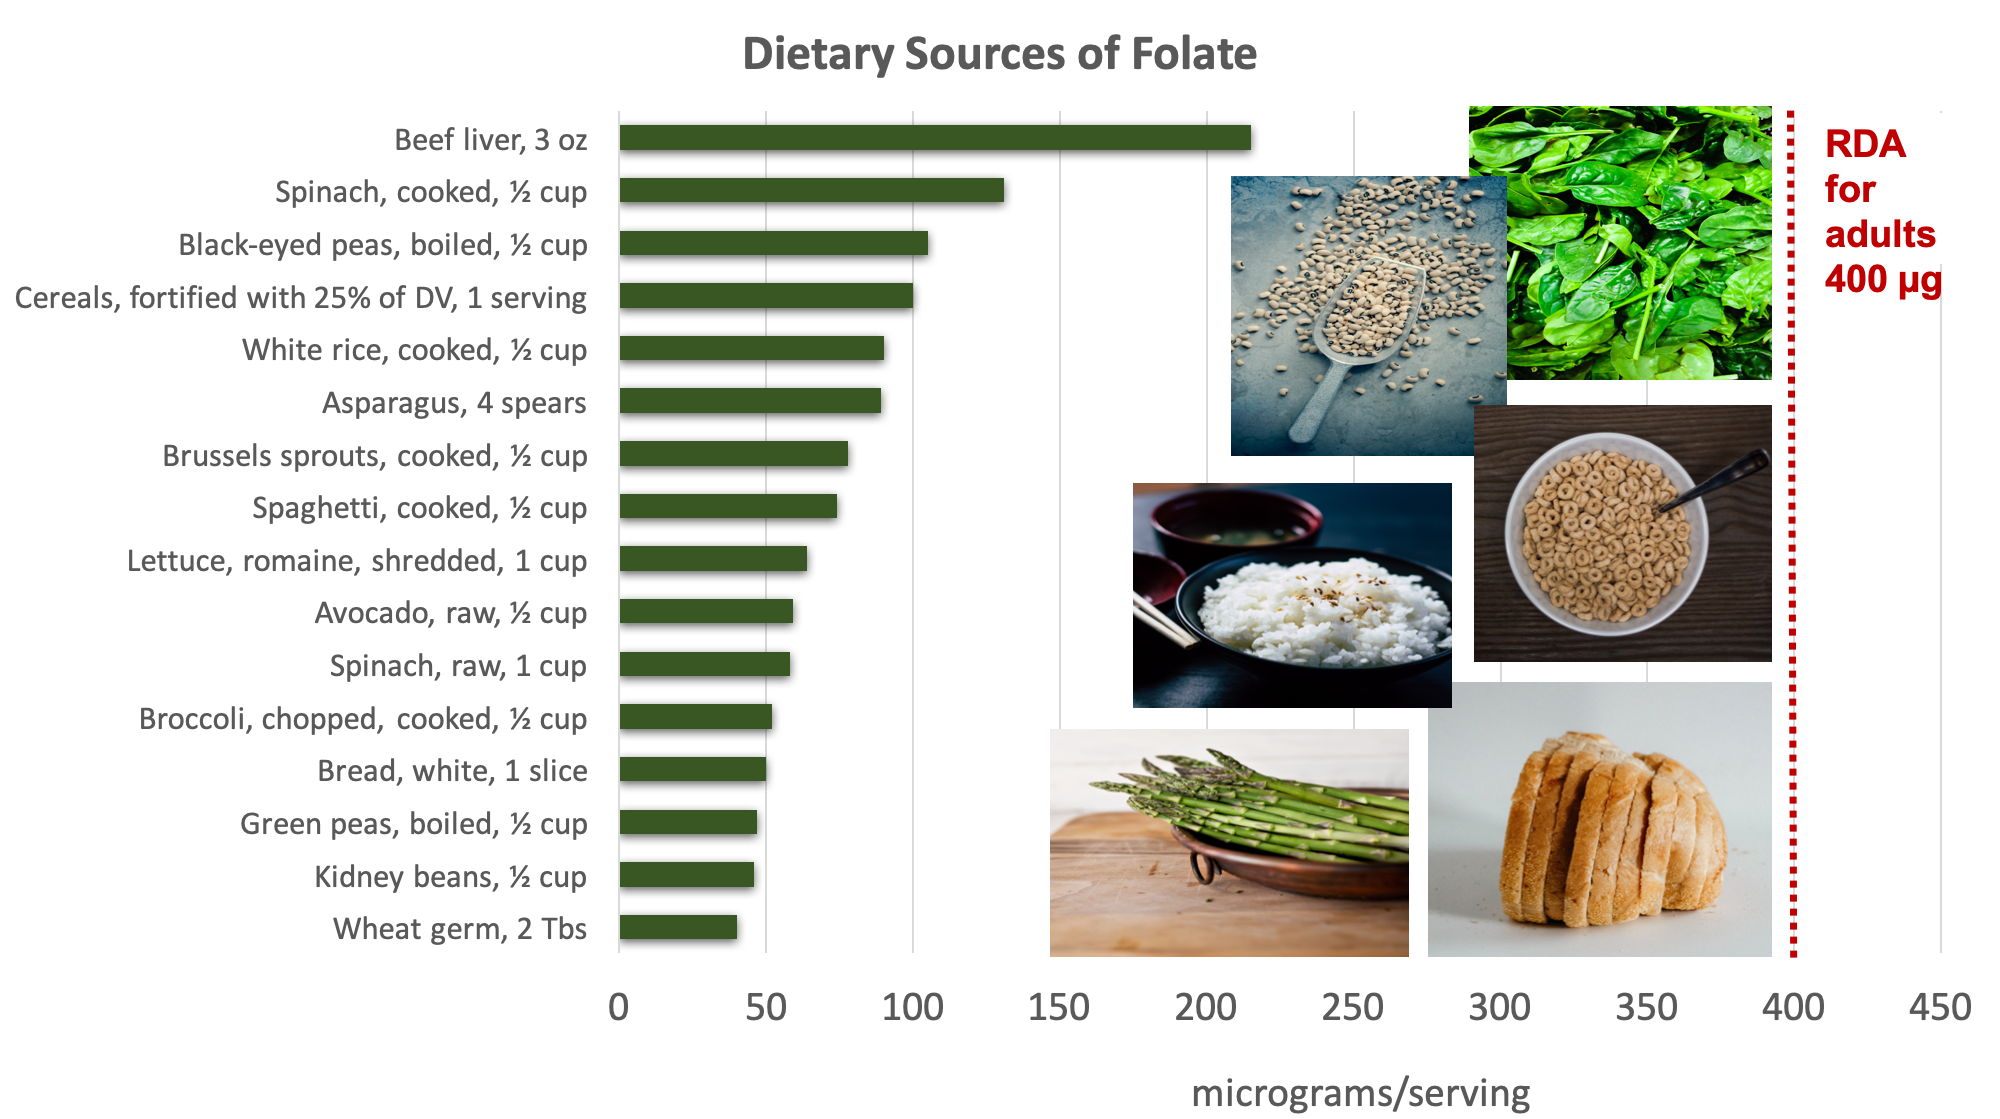 Bar graph showing dietary sources of folate compared with the RDA adults of 400 micrograms. Top sources include liver, darky leafy green, legumes, and fortified cereals and grains. Food sources pictured include spinach, black-eyed peas, cereal, rice, asparagus, bread.